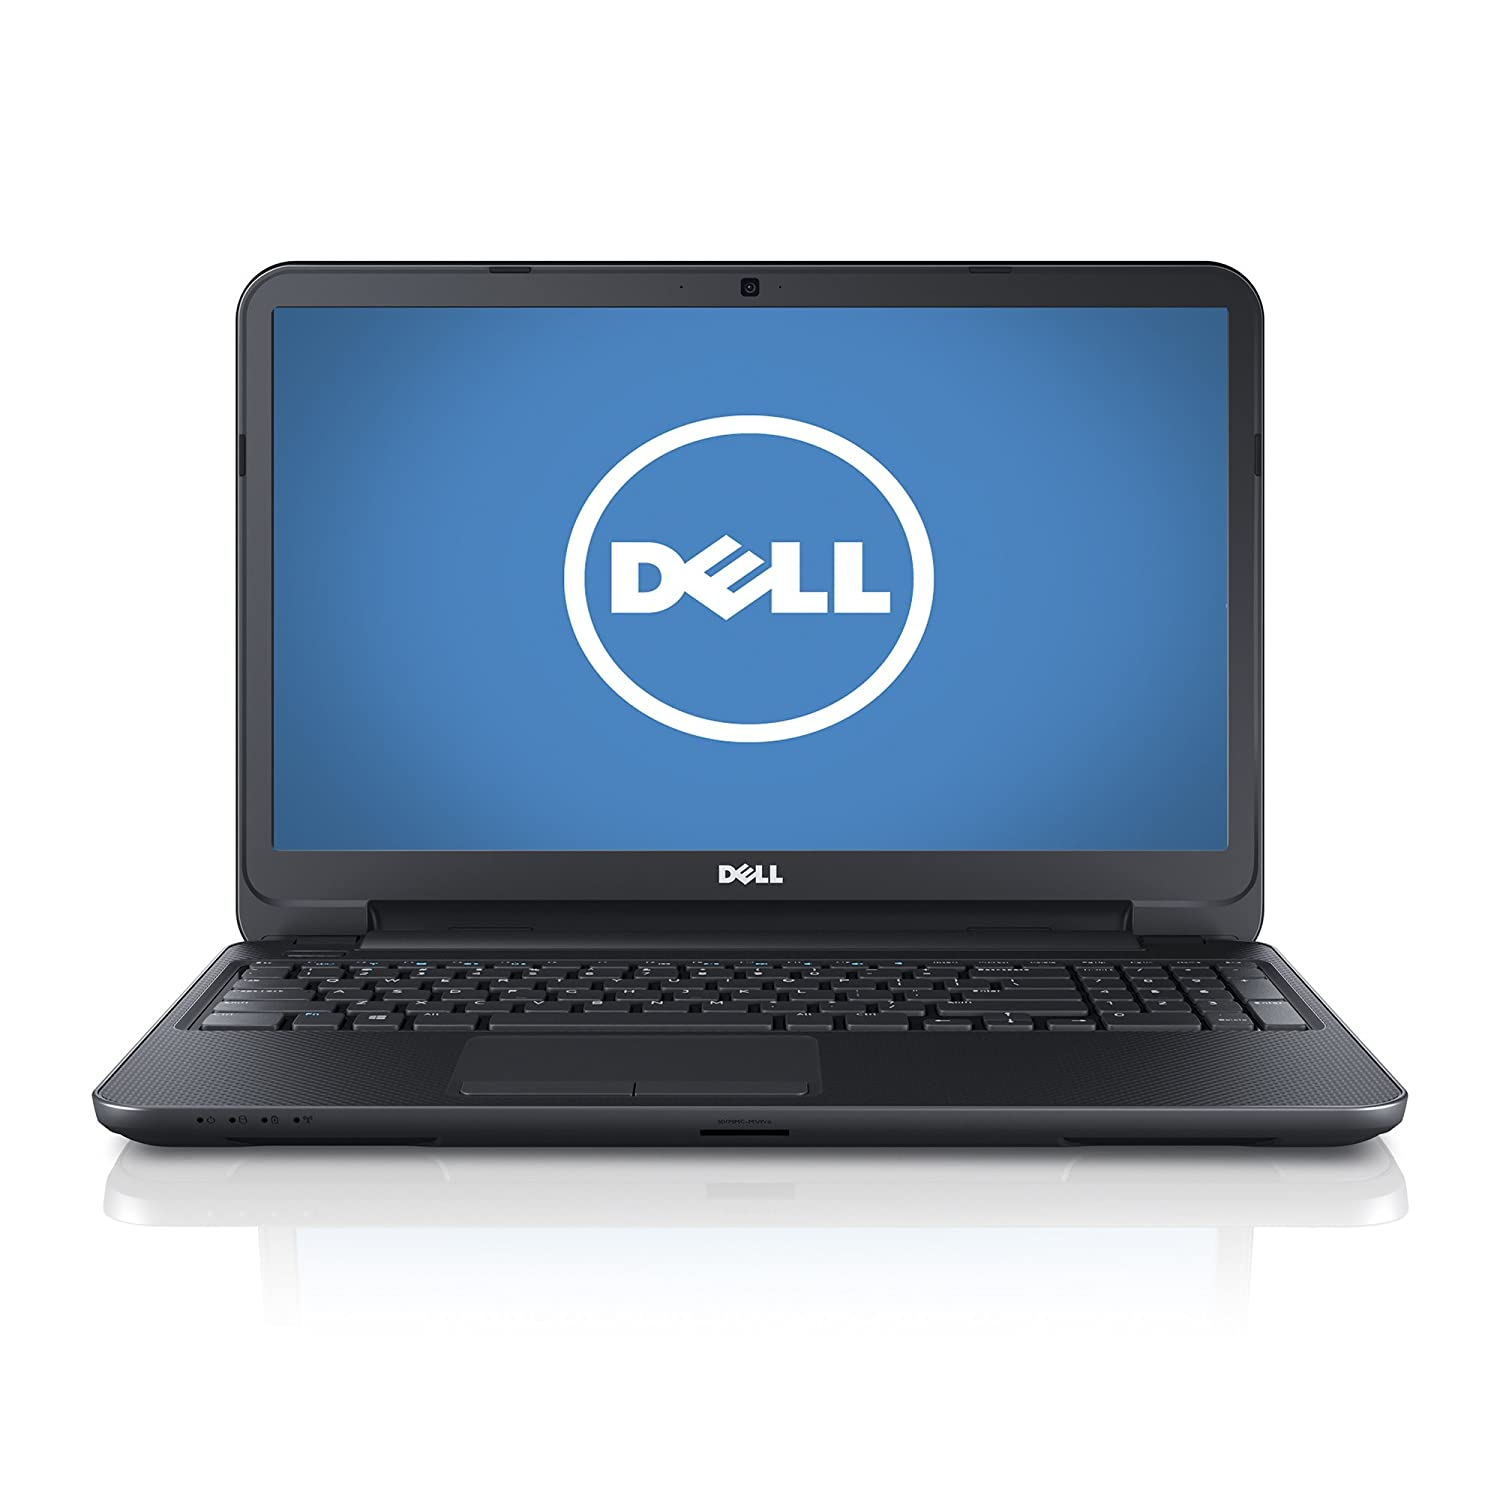 Dell Inspiron i15RV-1909BLK 15.6-Inch Laptop